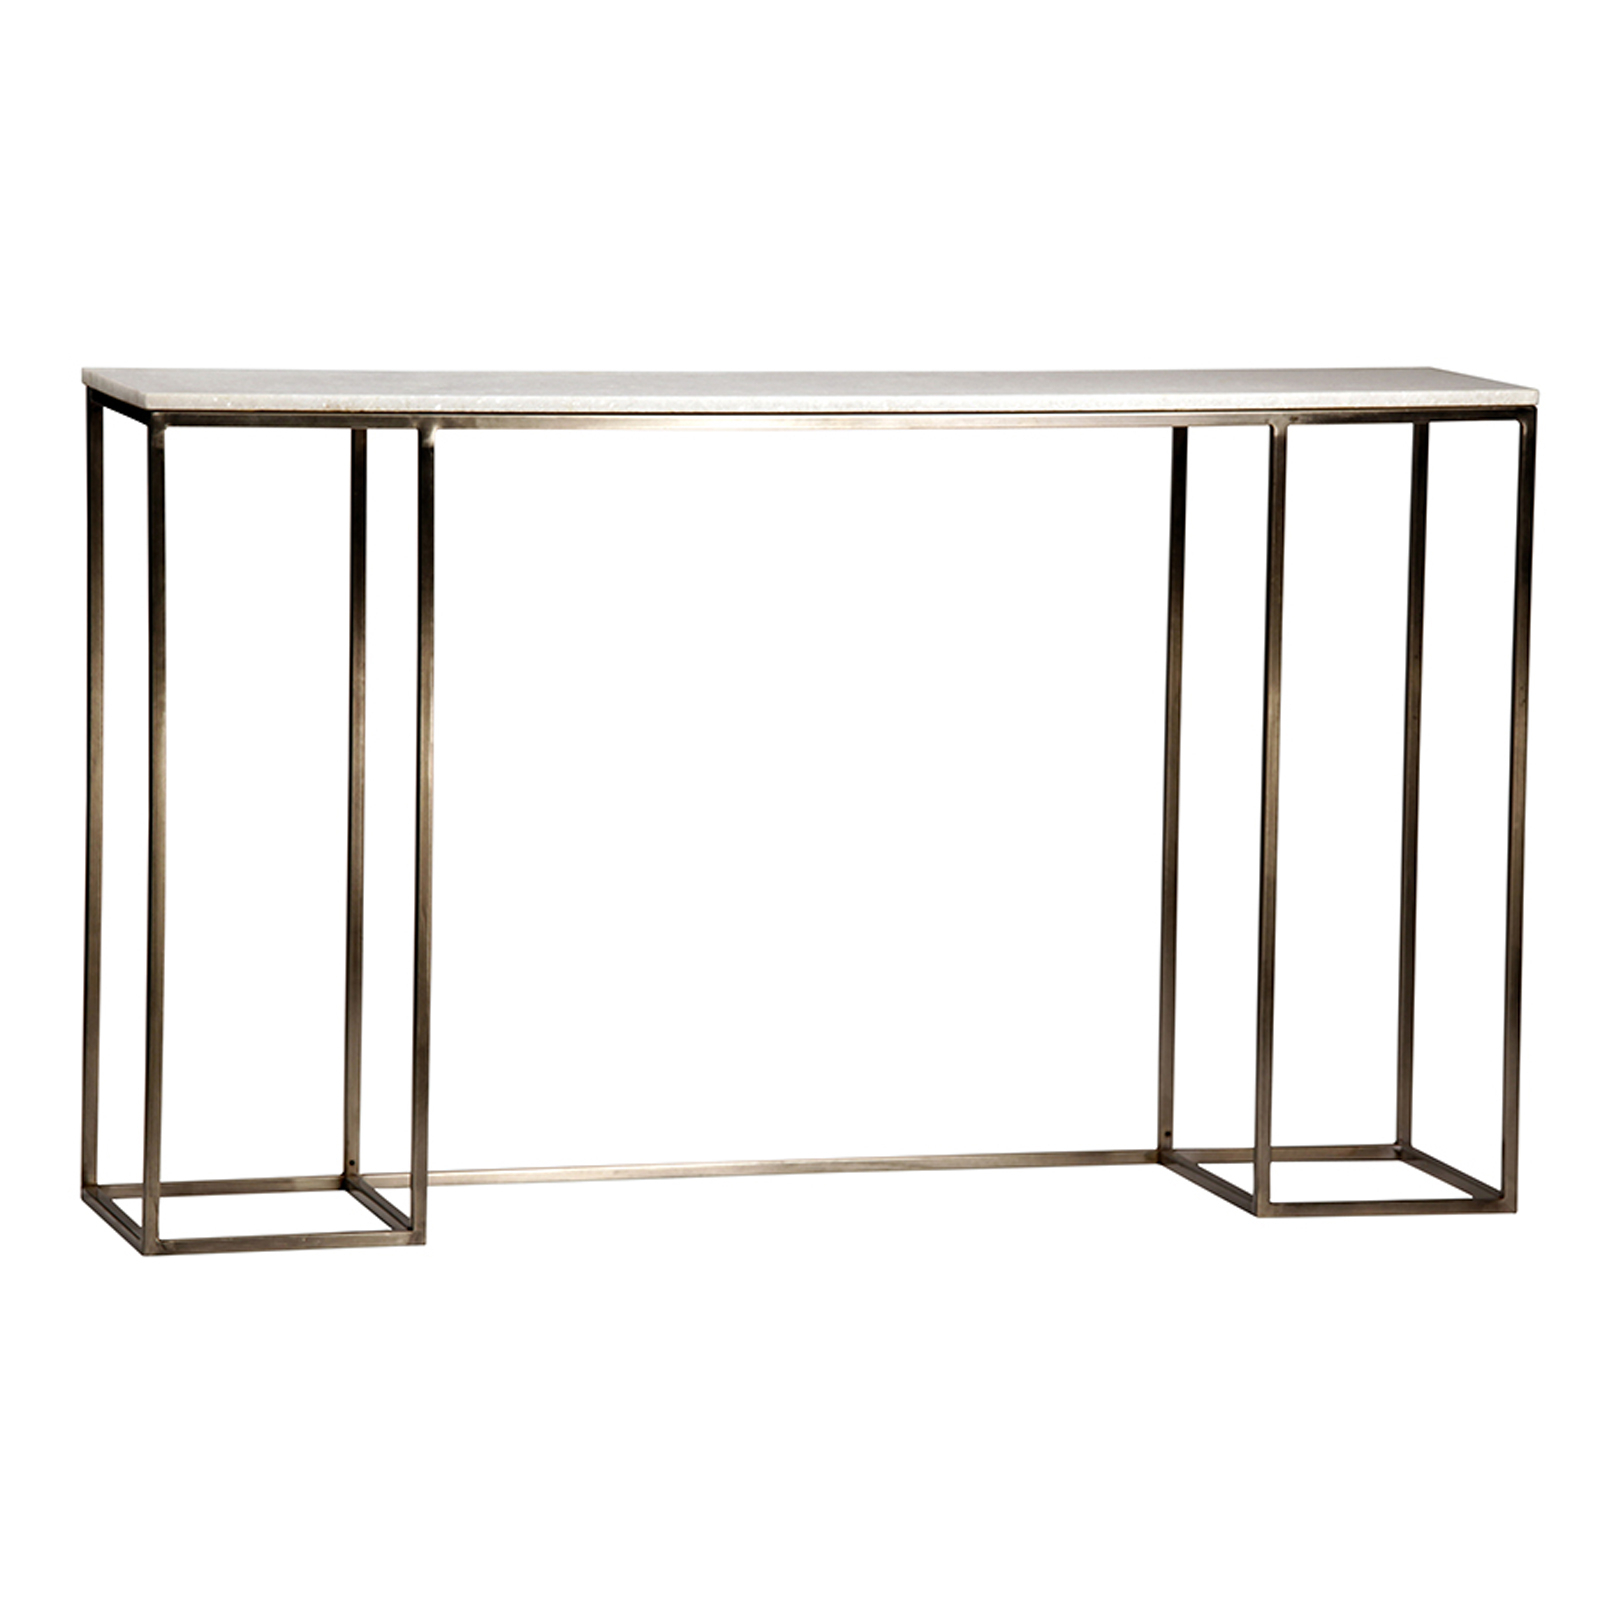 Claire Marble Console Table Furniture | Mix Furniture Pertaining To Mix Patina Metal Frame Console Tables (View 8 of 30)